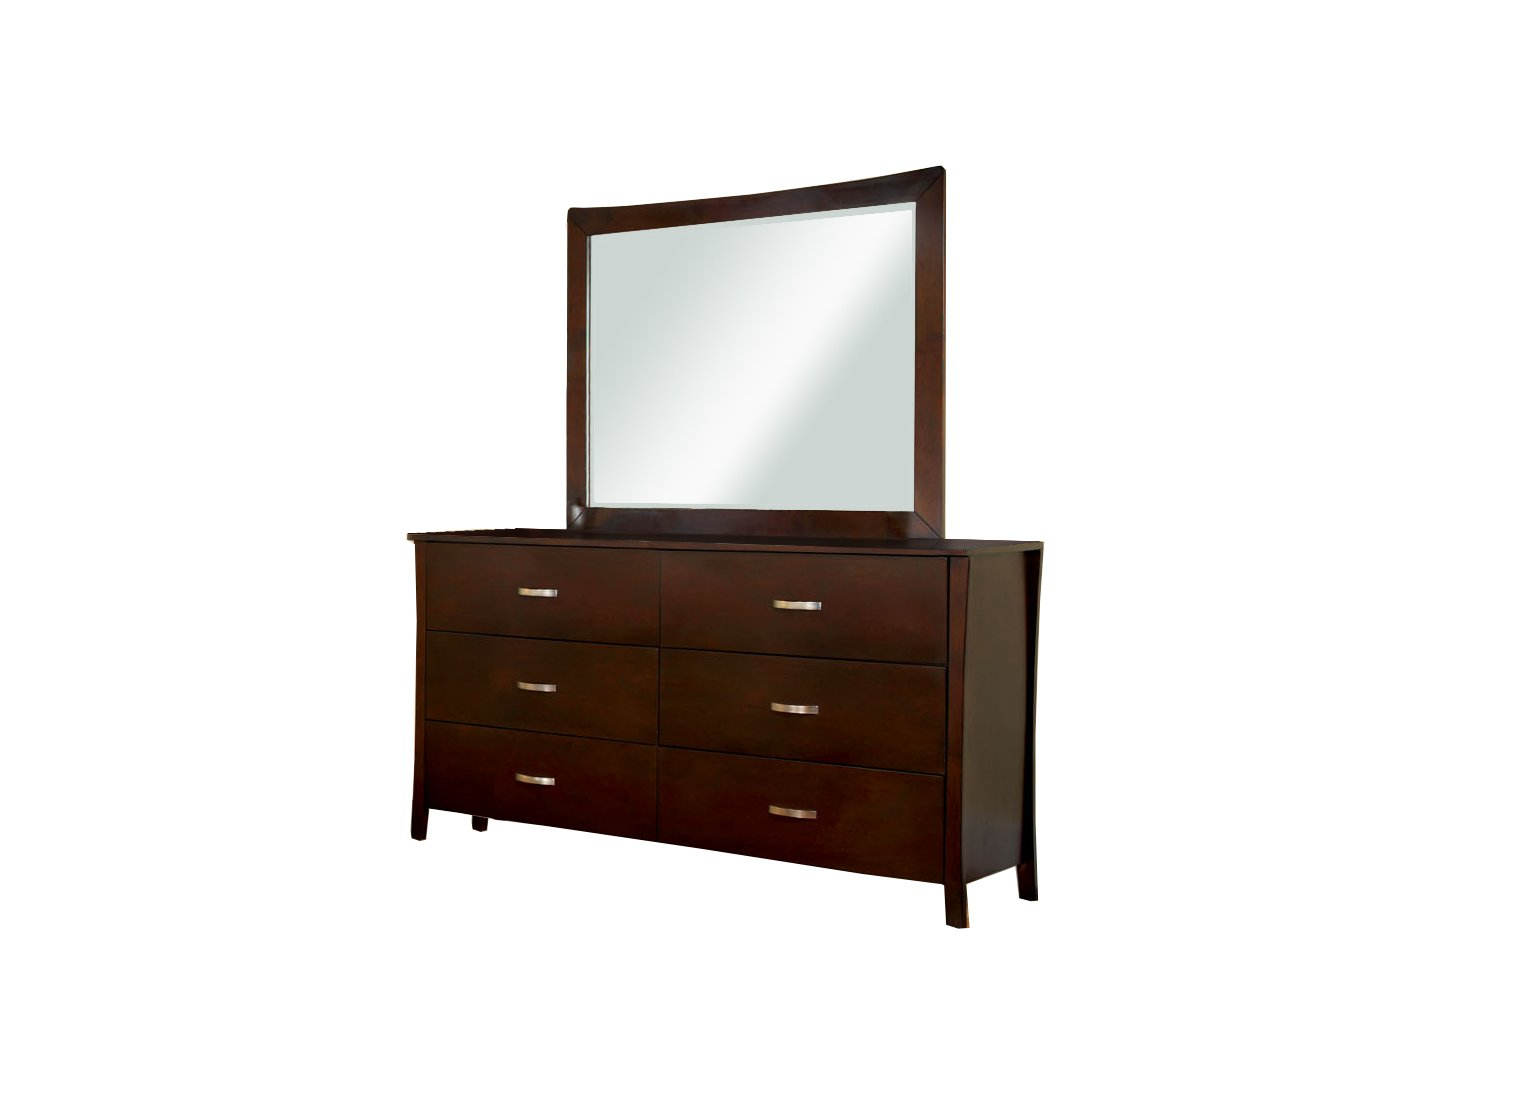 Furniture of America Bex 2-Piece Dresser and Mirror Set, Brown Cherry Finish by Furniture of America